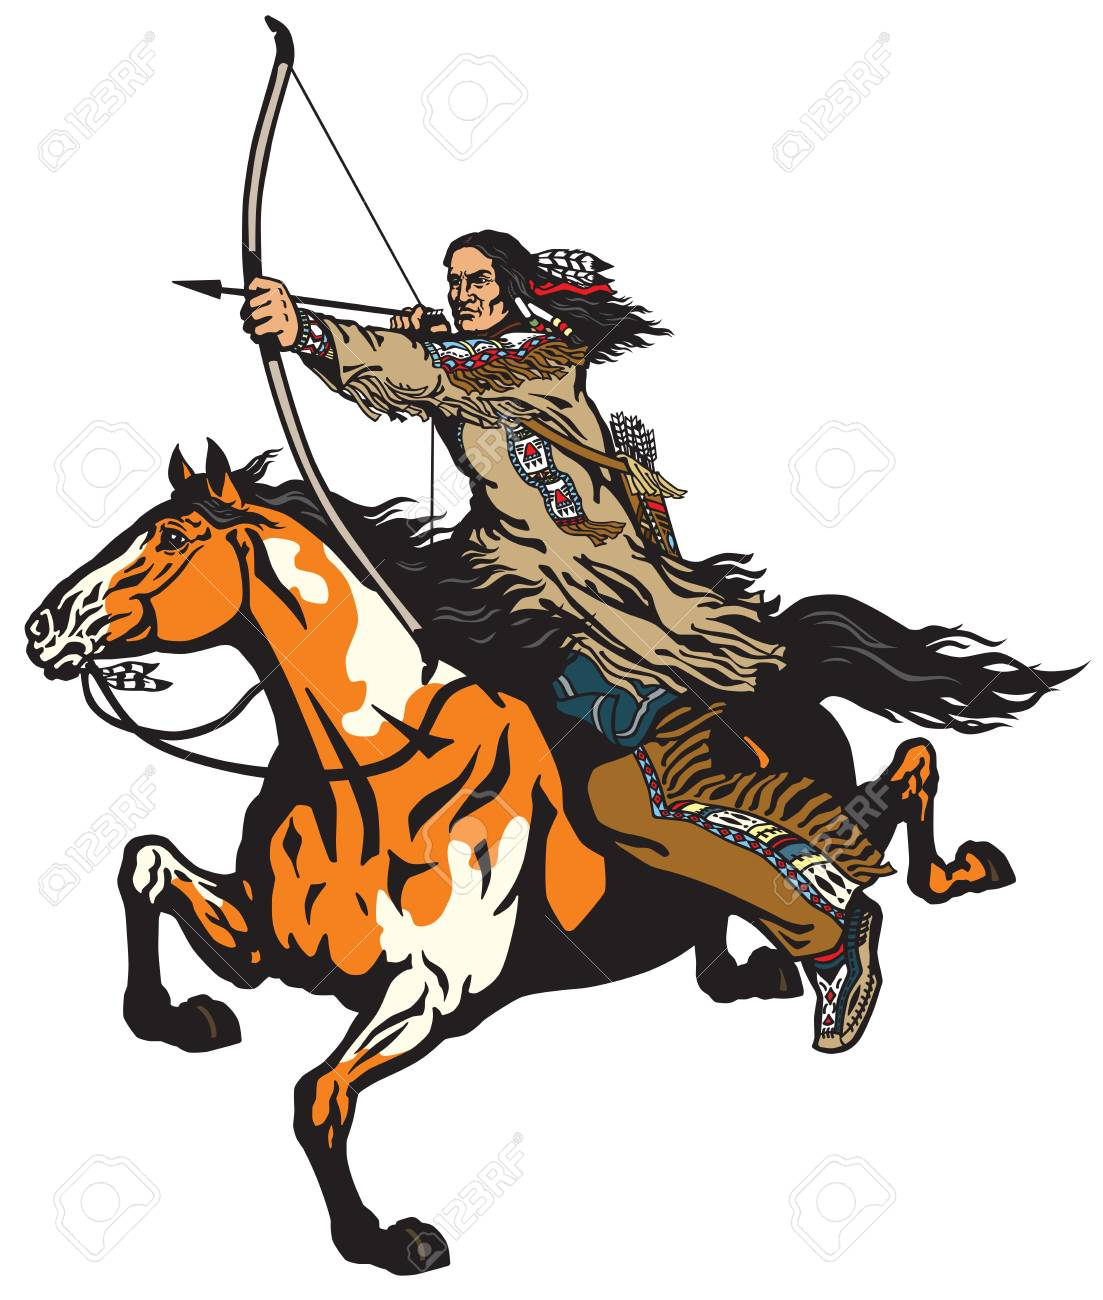 American Native Indian Archer On A Horseback Riding A Pinto Colored Royalty Free Cliparts Vectors And Stock Illustration Image 103958594